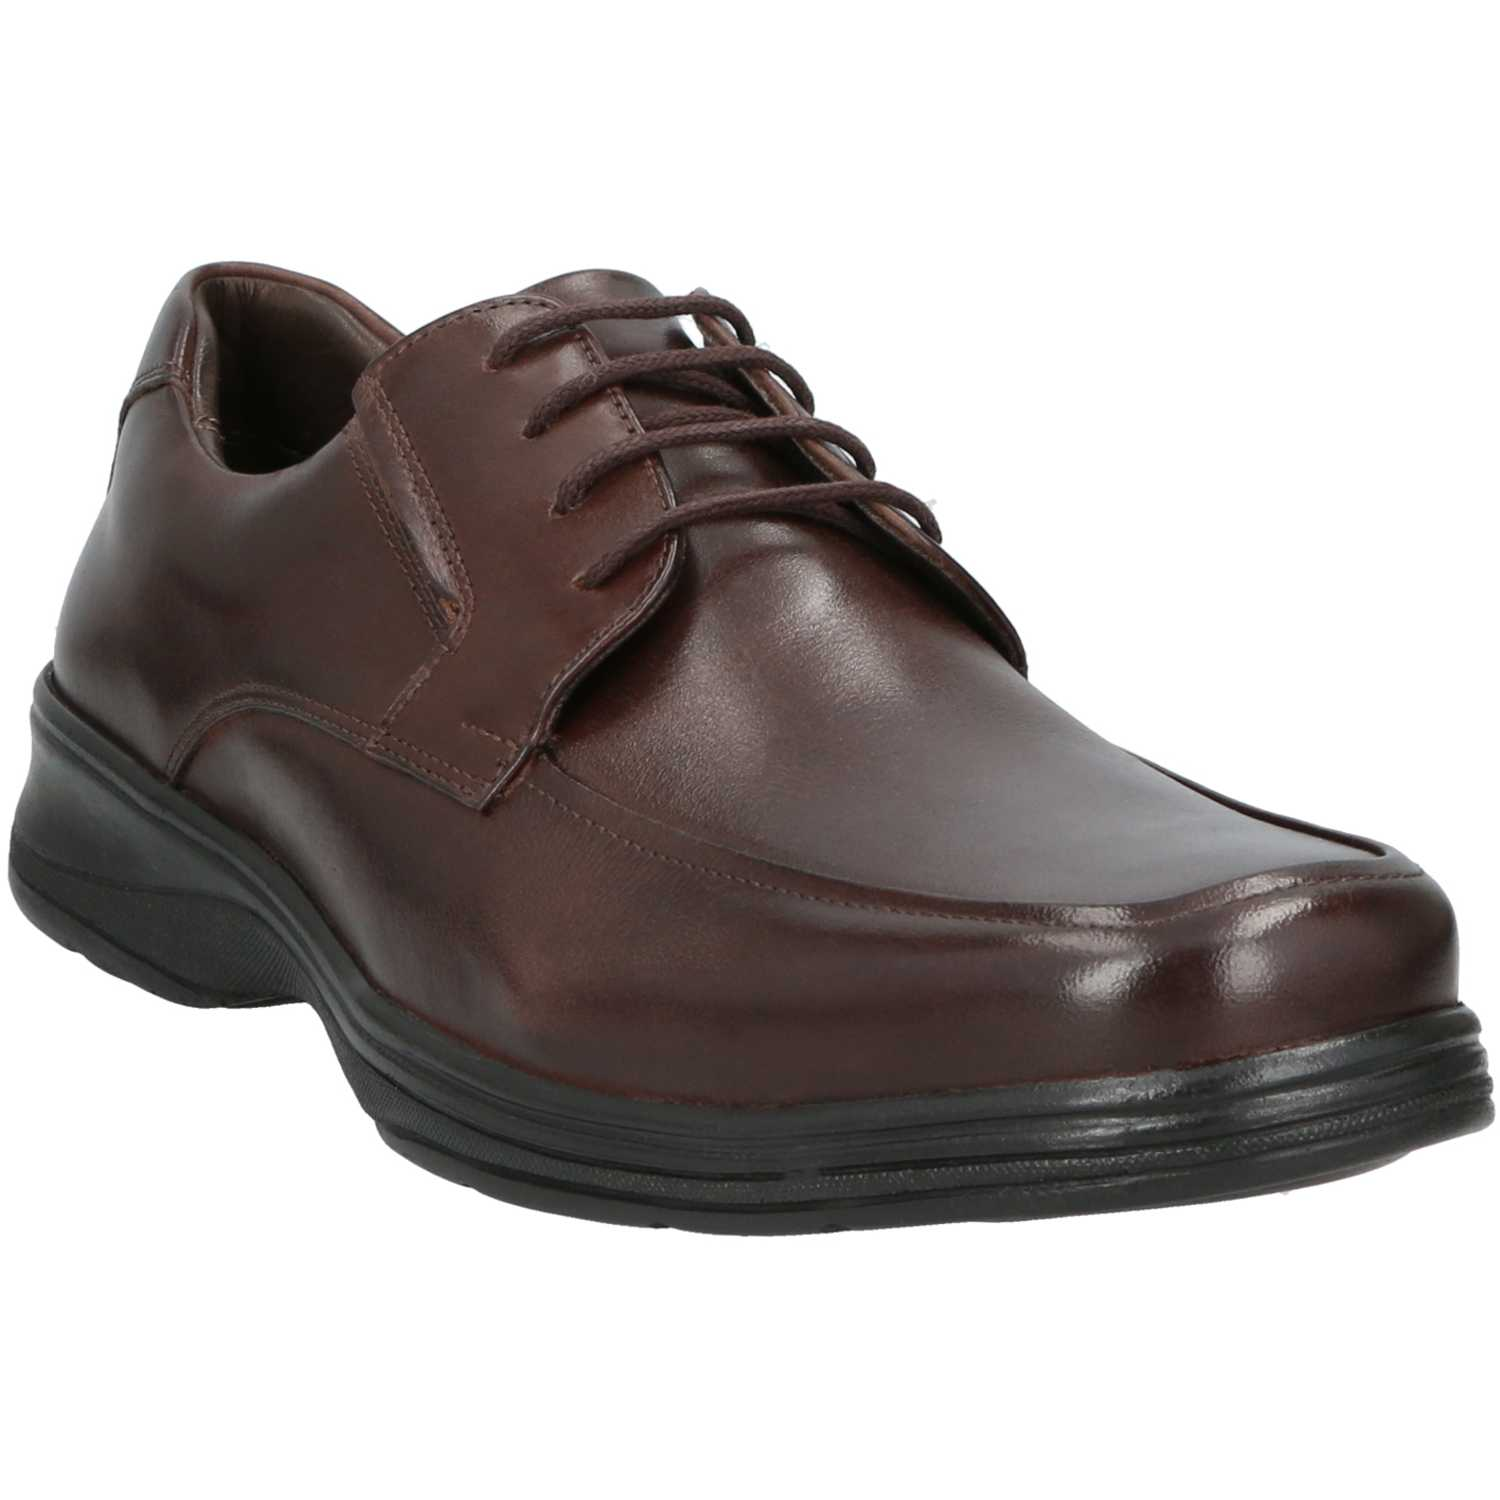 GUANTE SPRINGSYS Chocolate Oxfords